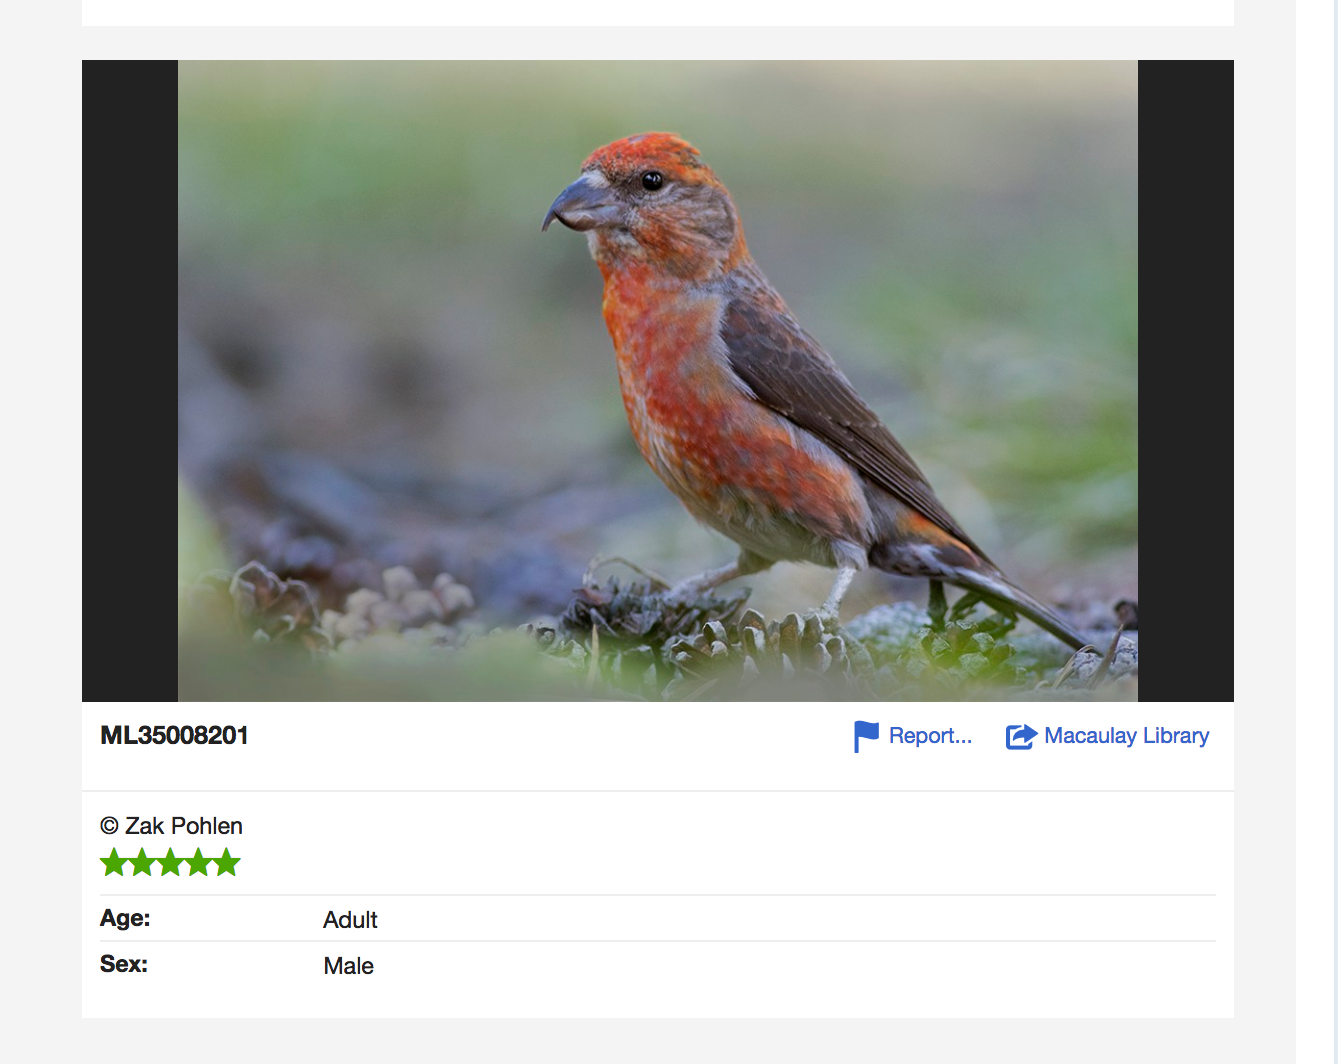 Zak Pohlen's stunning photo of the Cassia crossbill from Idaho. Check out his eBird list to hear the great recordings he made documenting this species! http://ebird.org/ebird/view/checklist/S30033778